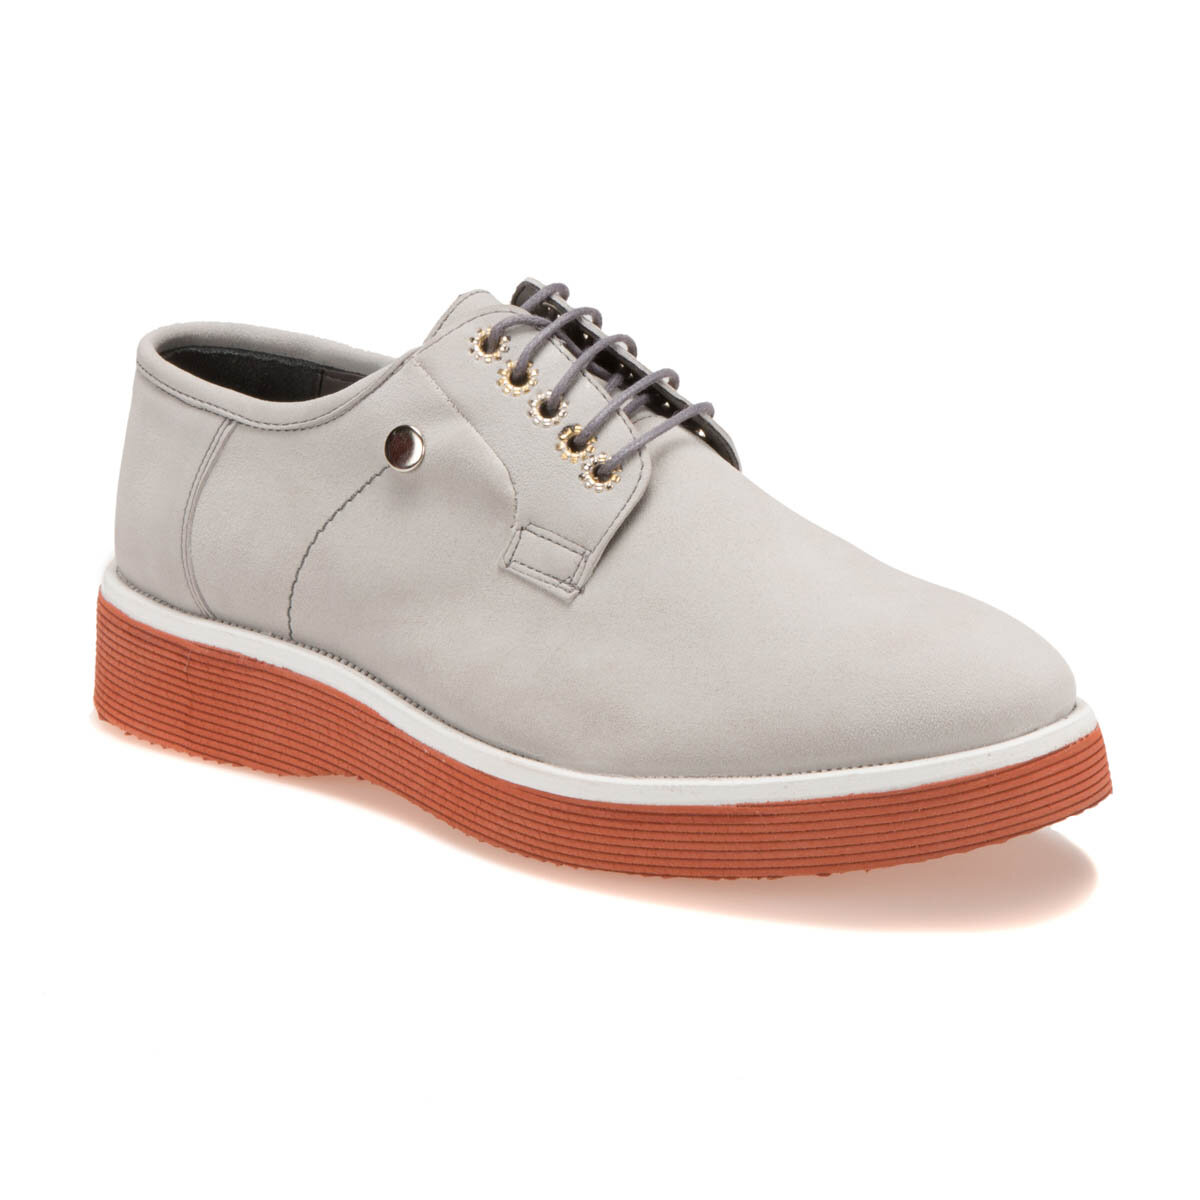 FLO 690-1 M 1506 Gray Men 'S Classic Shoes-Styles